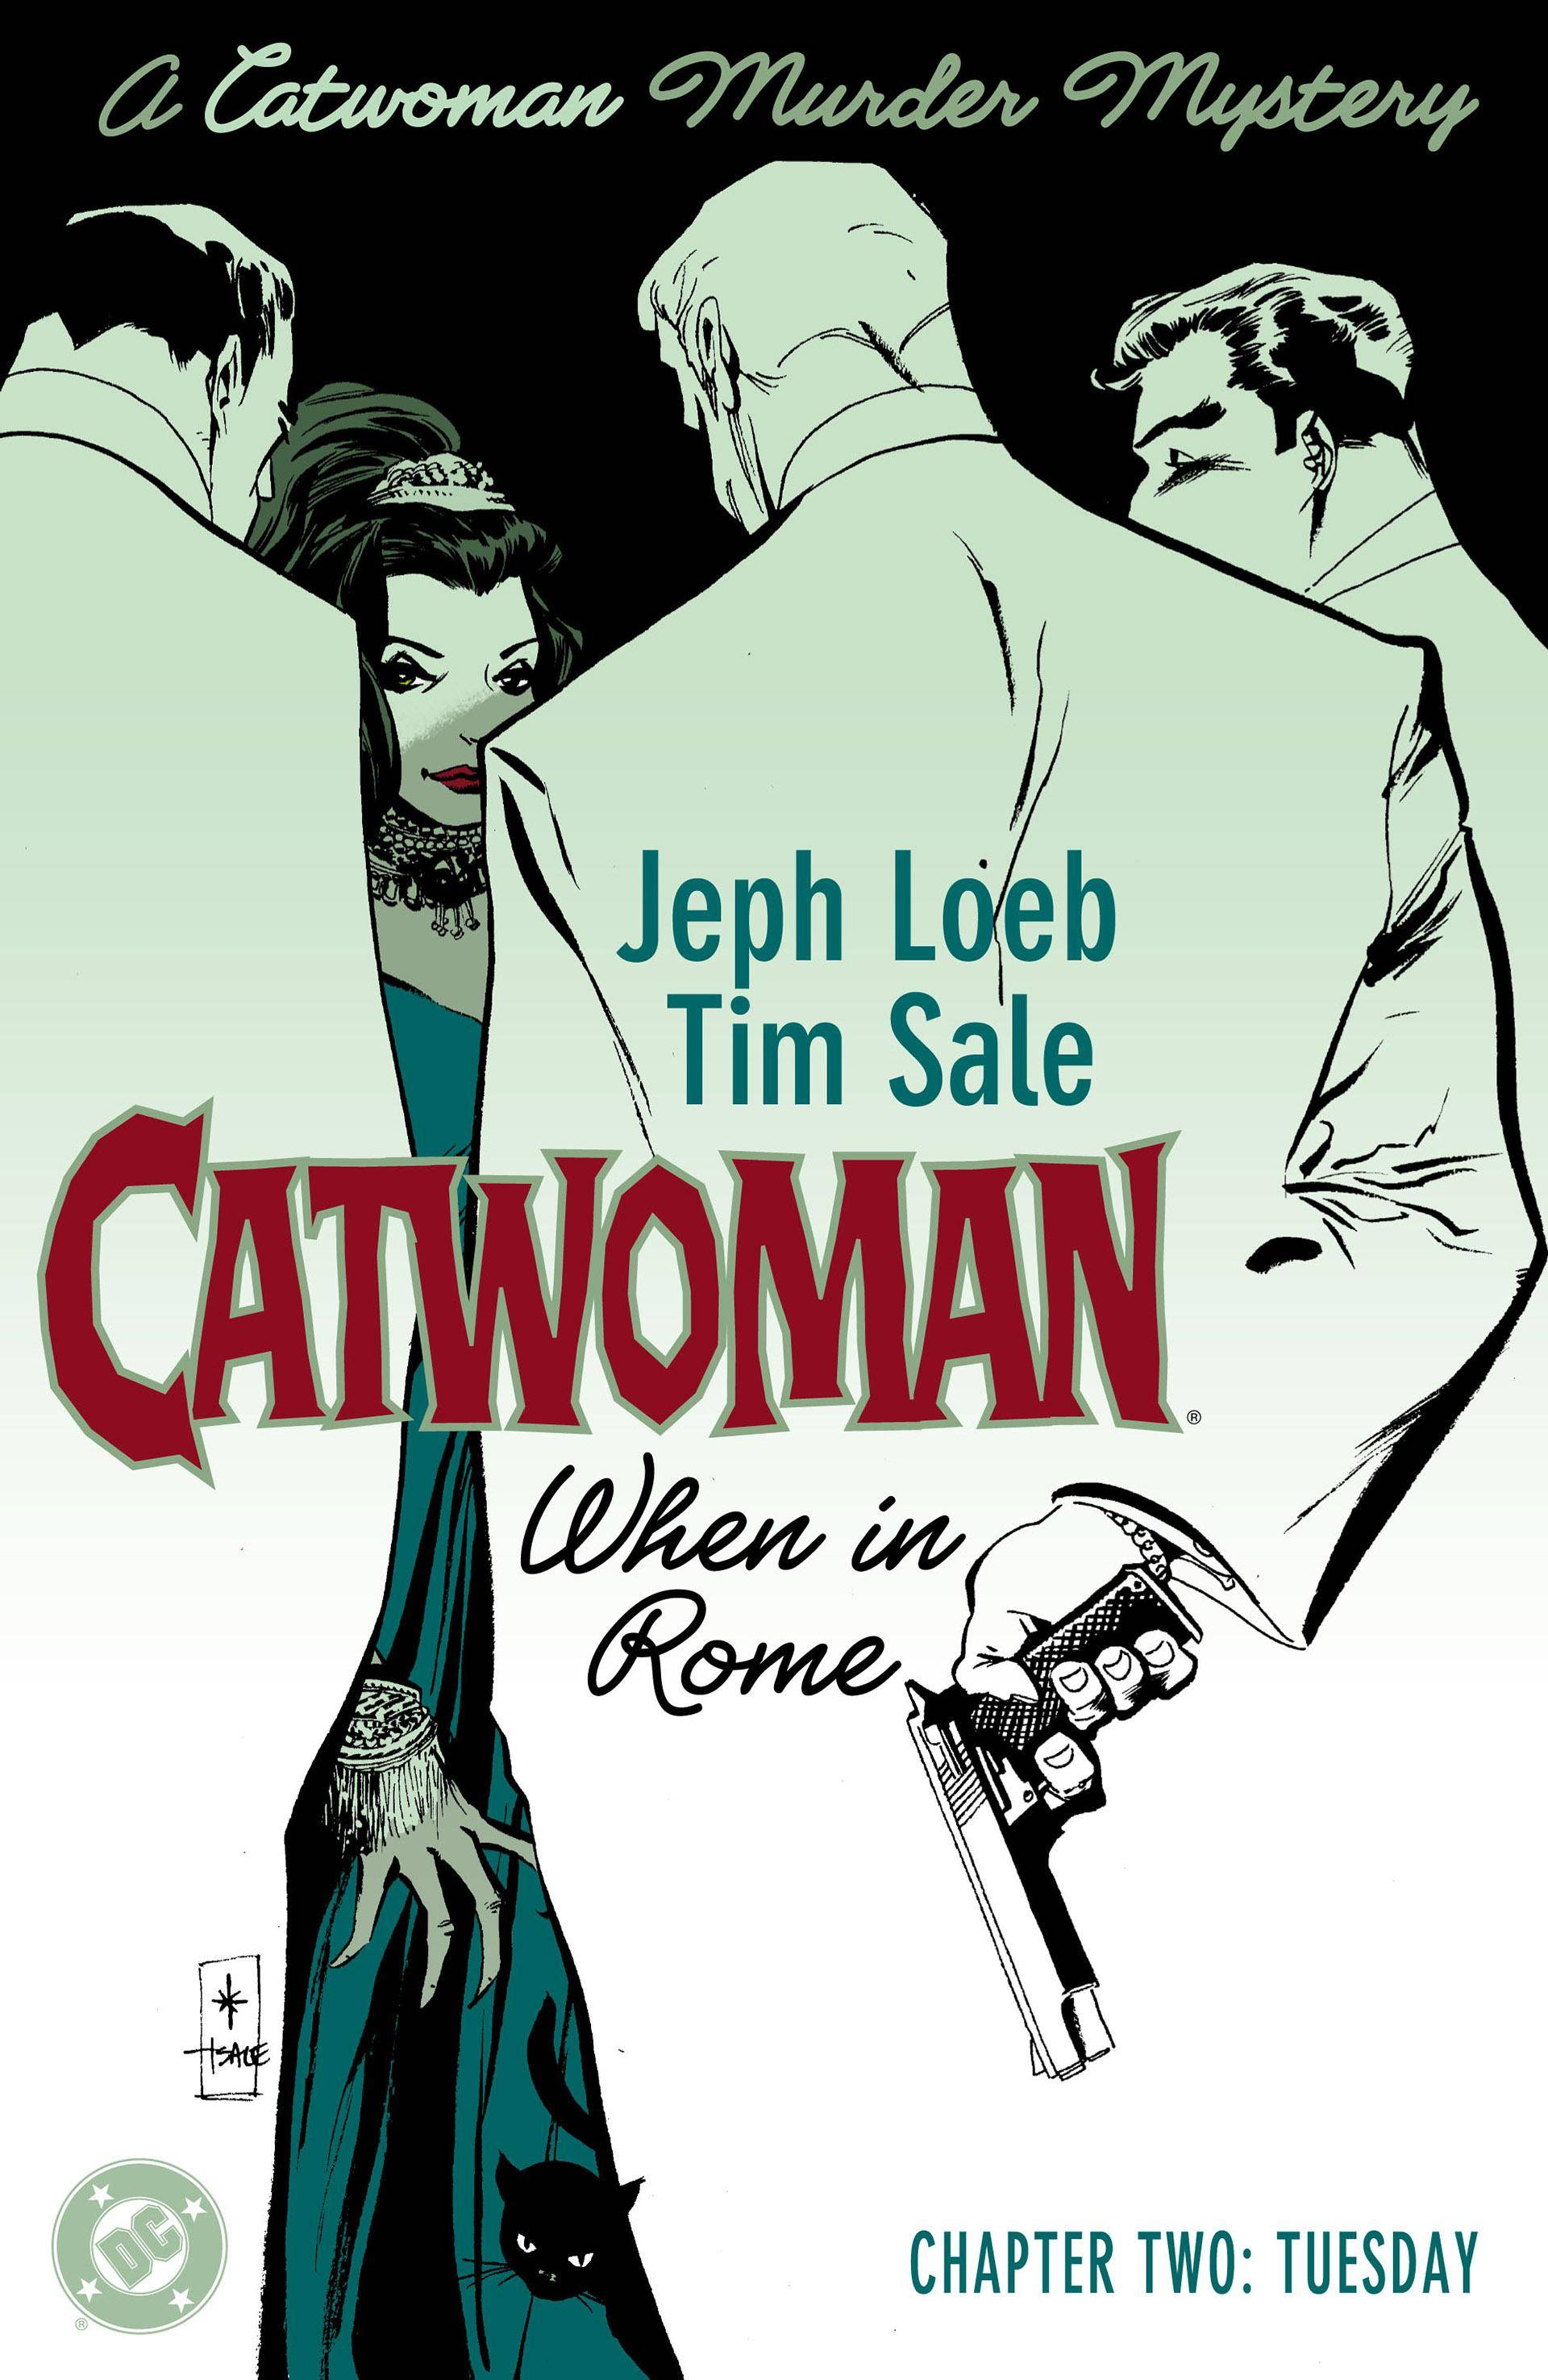 Catwoman When in Rome 02 of 6 2004 Digital